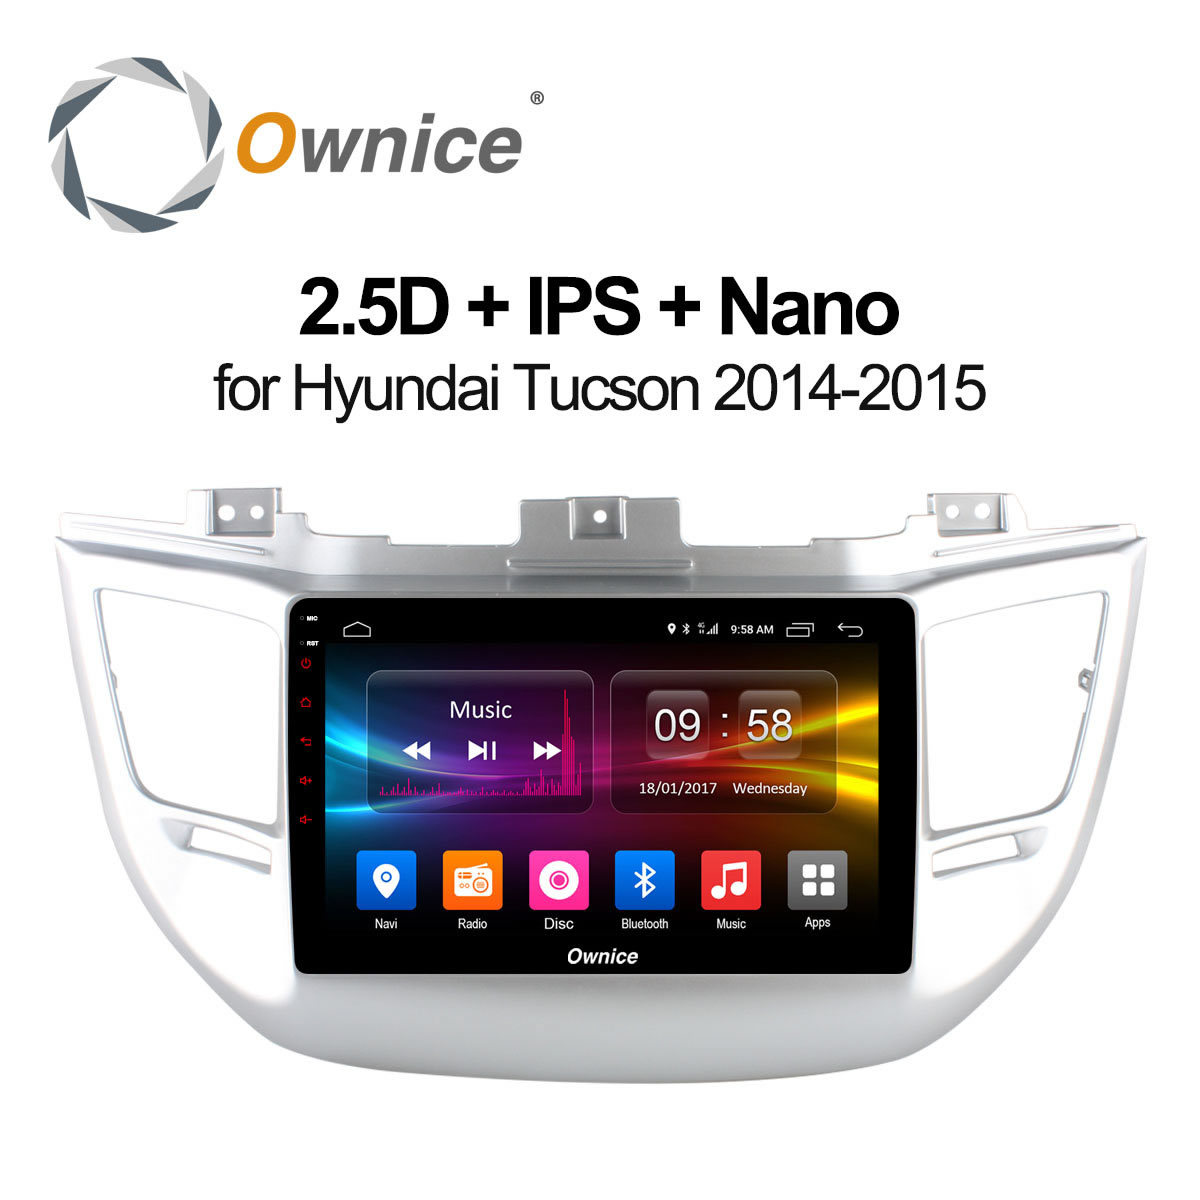 Ownice C500+ 9 Car Radio Player for Hyundai TUCSON 2014 2015 Android 8 Core gps navi 2GB RAM 32GB ROM support 4G LTE carplay 10 1 tda7851 android 7 1 for hyundai ix35 tucson 2015 2016 2017 2gb ram car dvd player gps map rds radio wifi 4g bluetooth 4 0